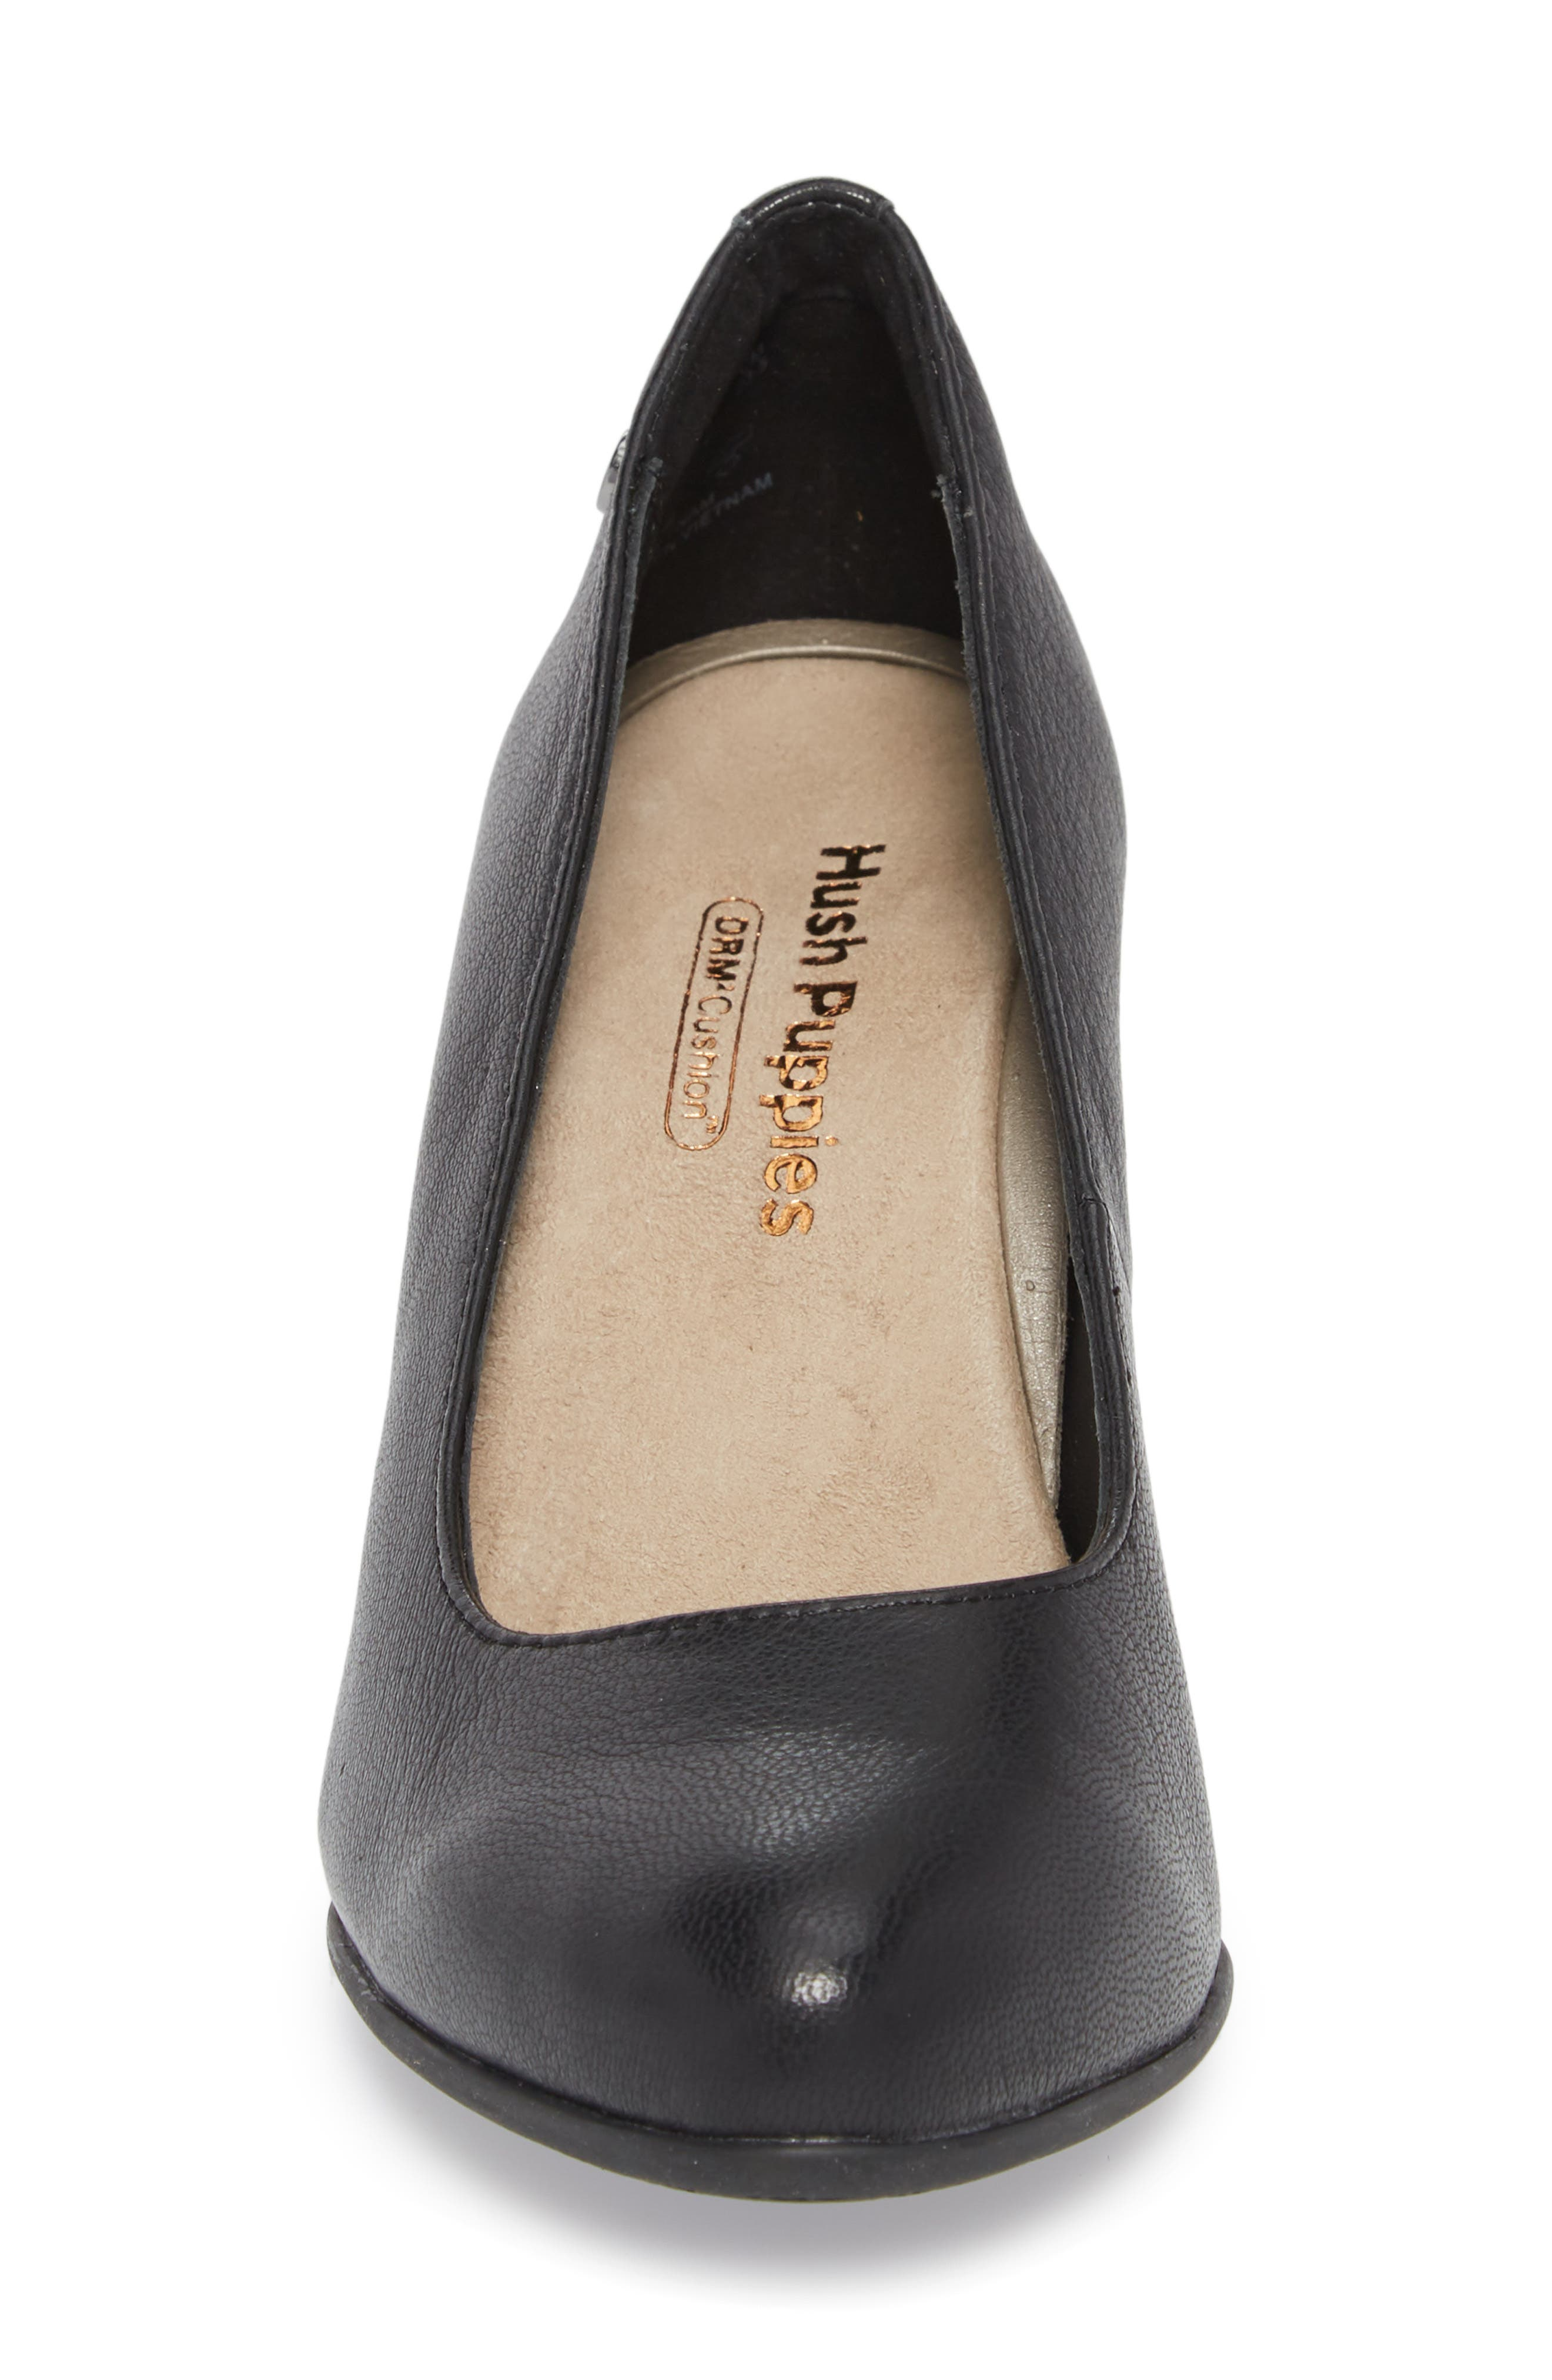 Minam Meaghan Pump,                             Alternate thumbnail 4, color,                             Black Leather